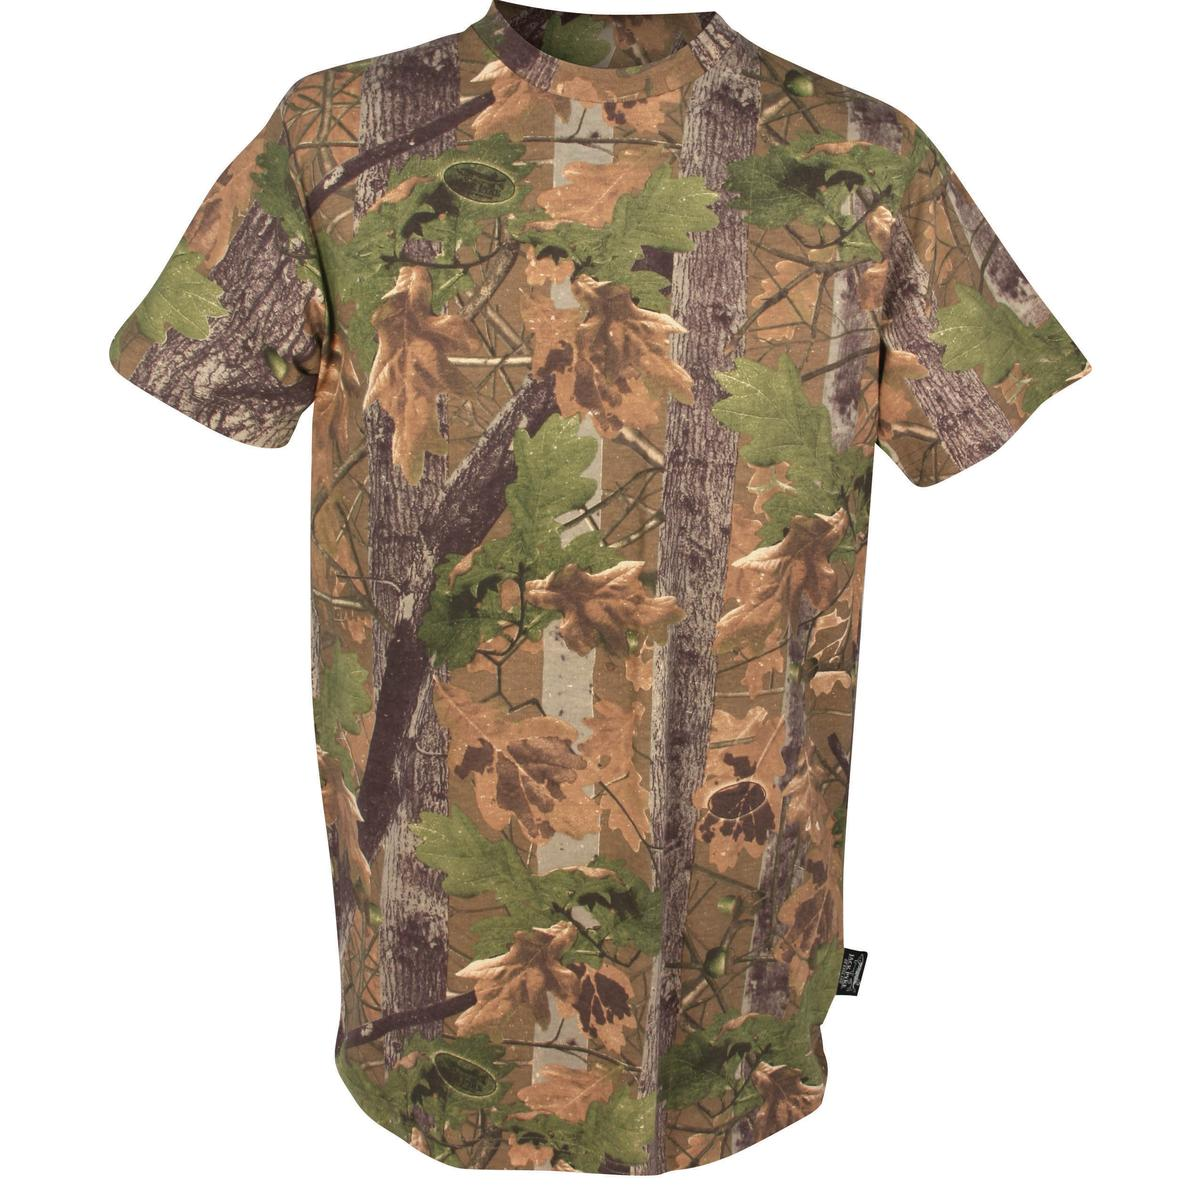 JACK PYKE SHORT SLEEVE T-SHIRT MENS S-3XL ENGLISH OAK EVO CAMO HUNTING CLOTHING